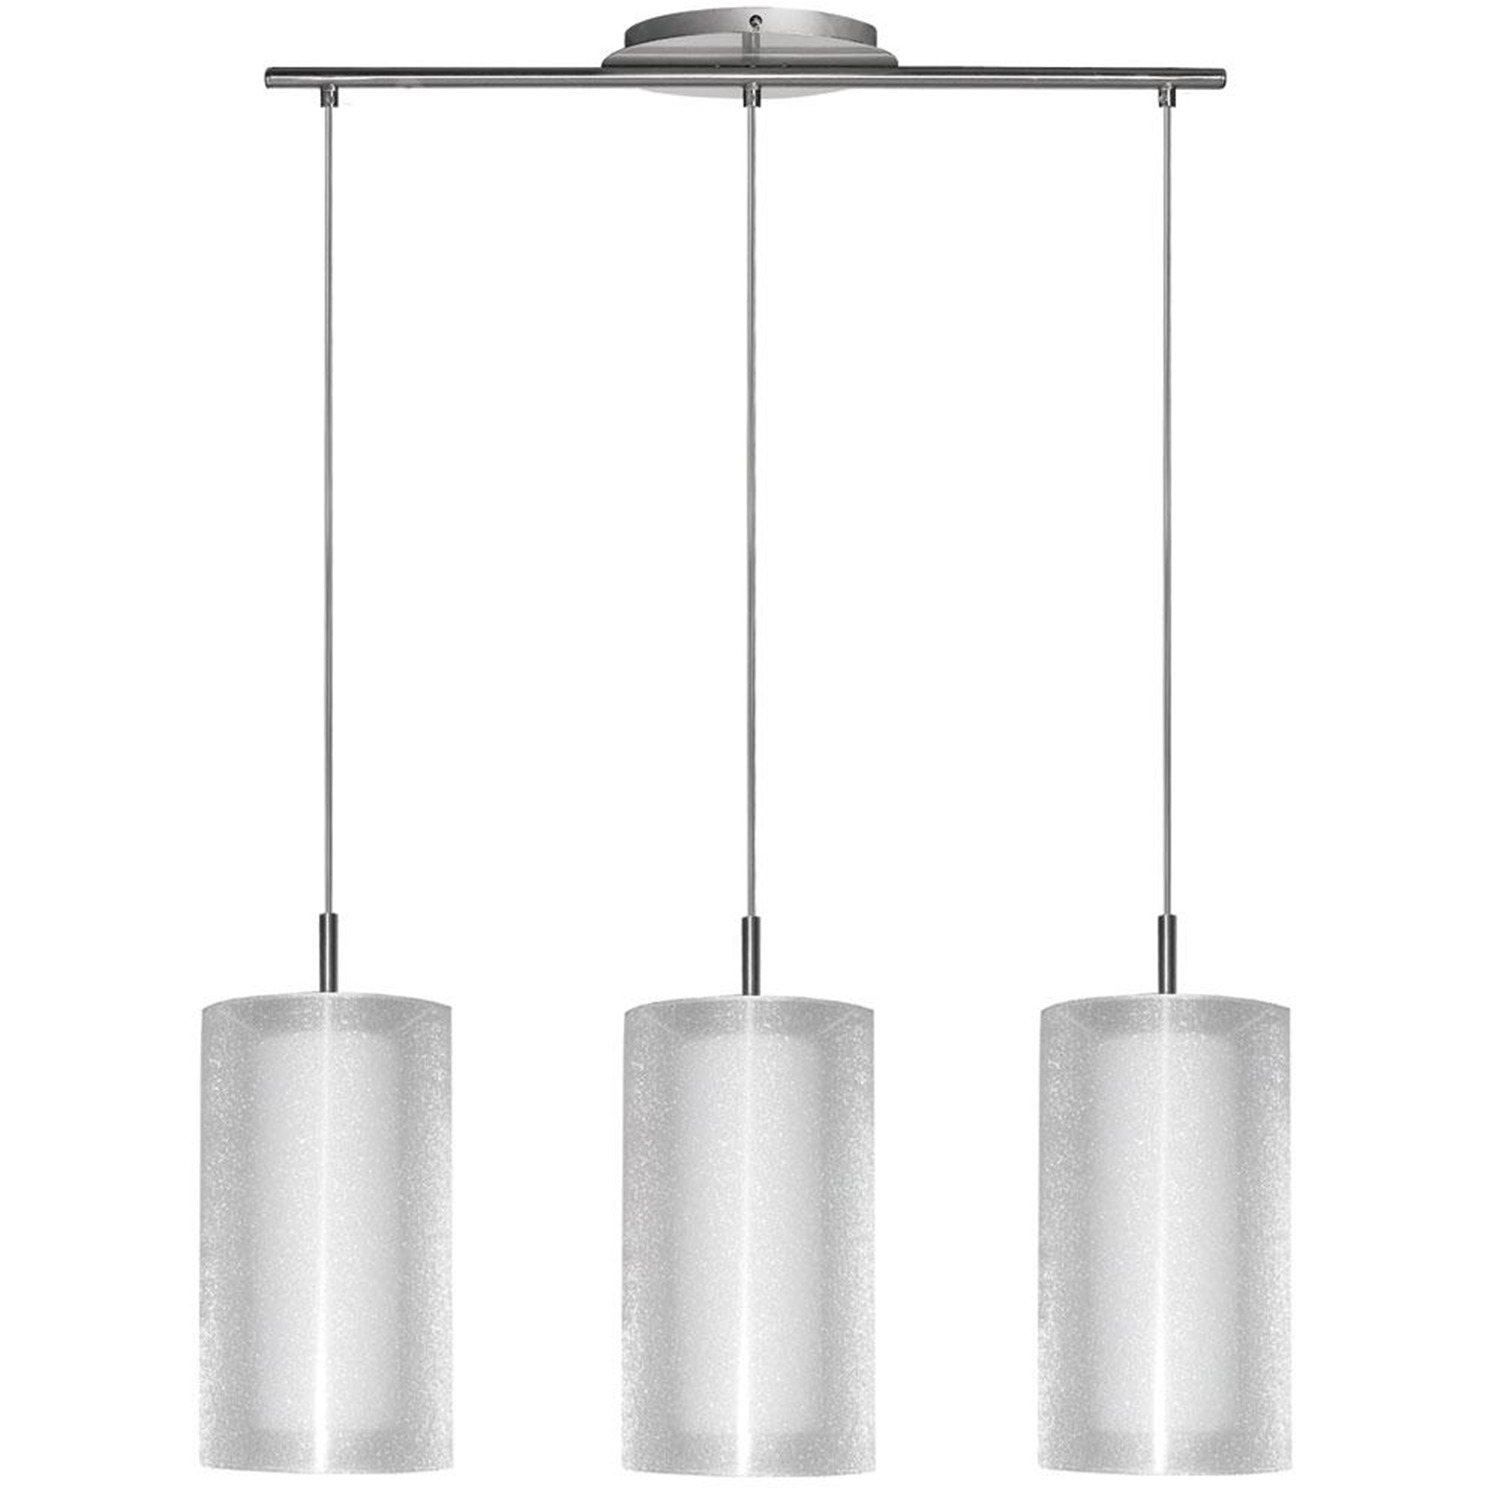 Dainolite Three Light Pendant Fixture With Cylindrical